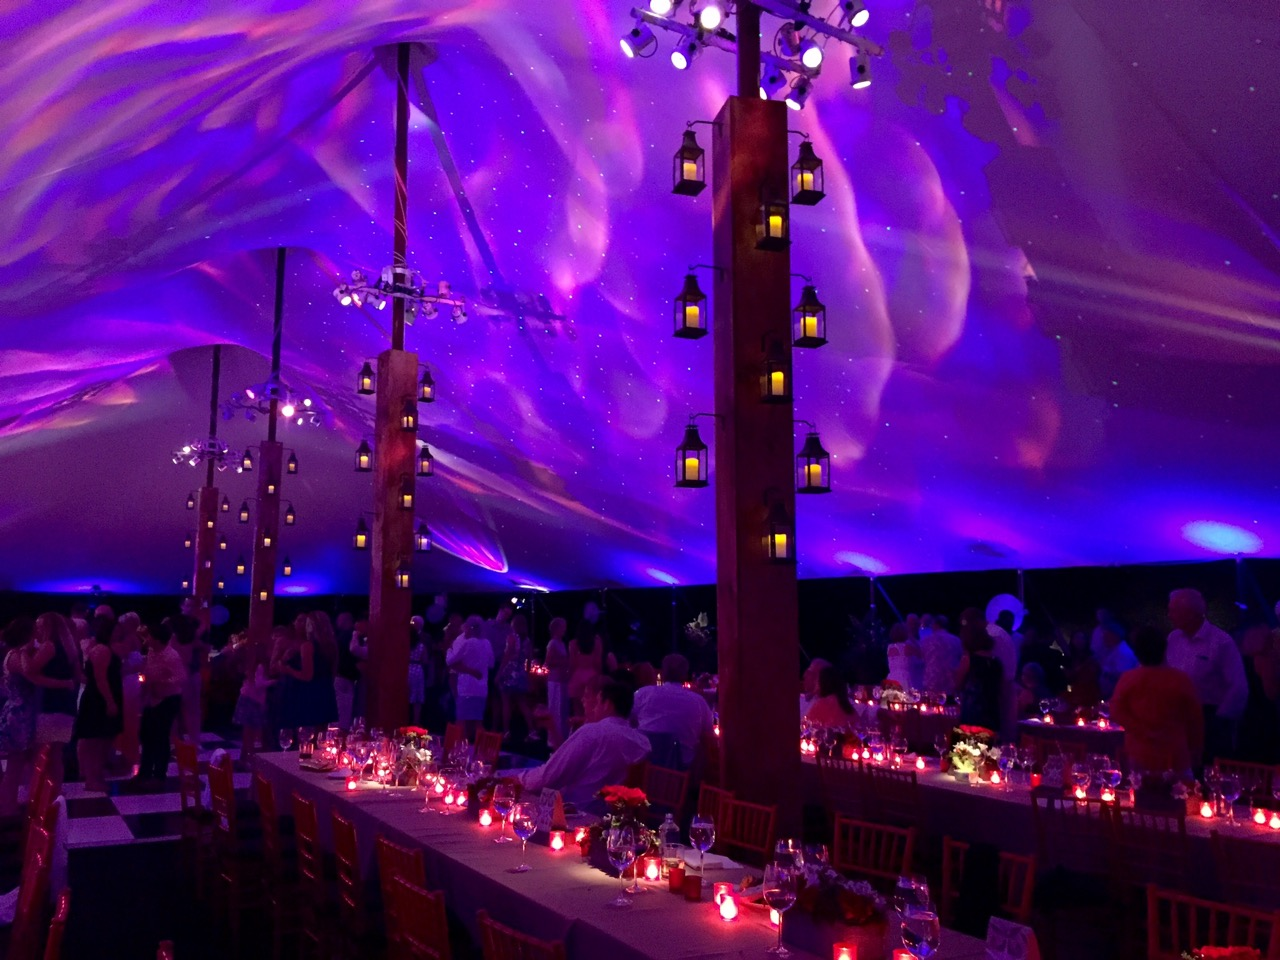 Eggsotic+Events+NJ+Event+Design+Lighting+Decor+Rental++-+14.jpg